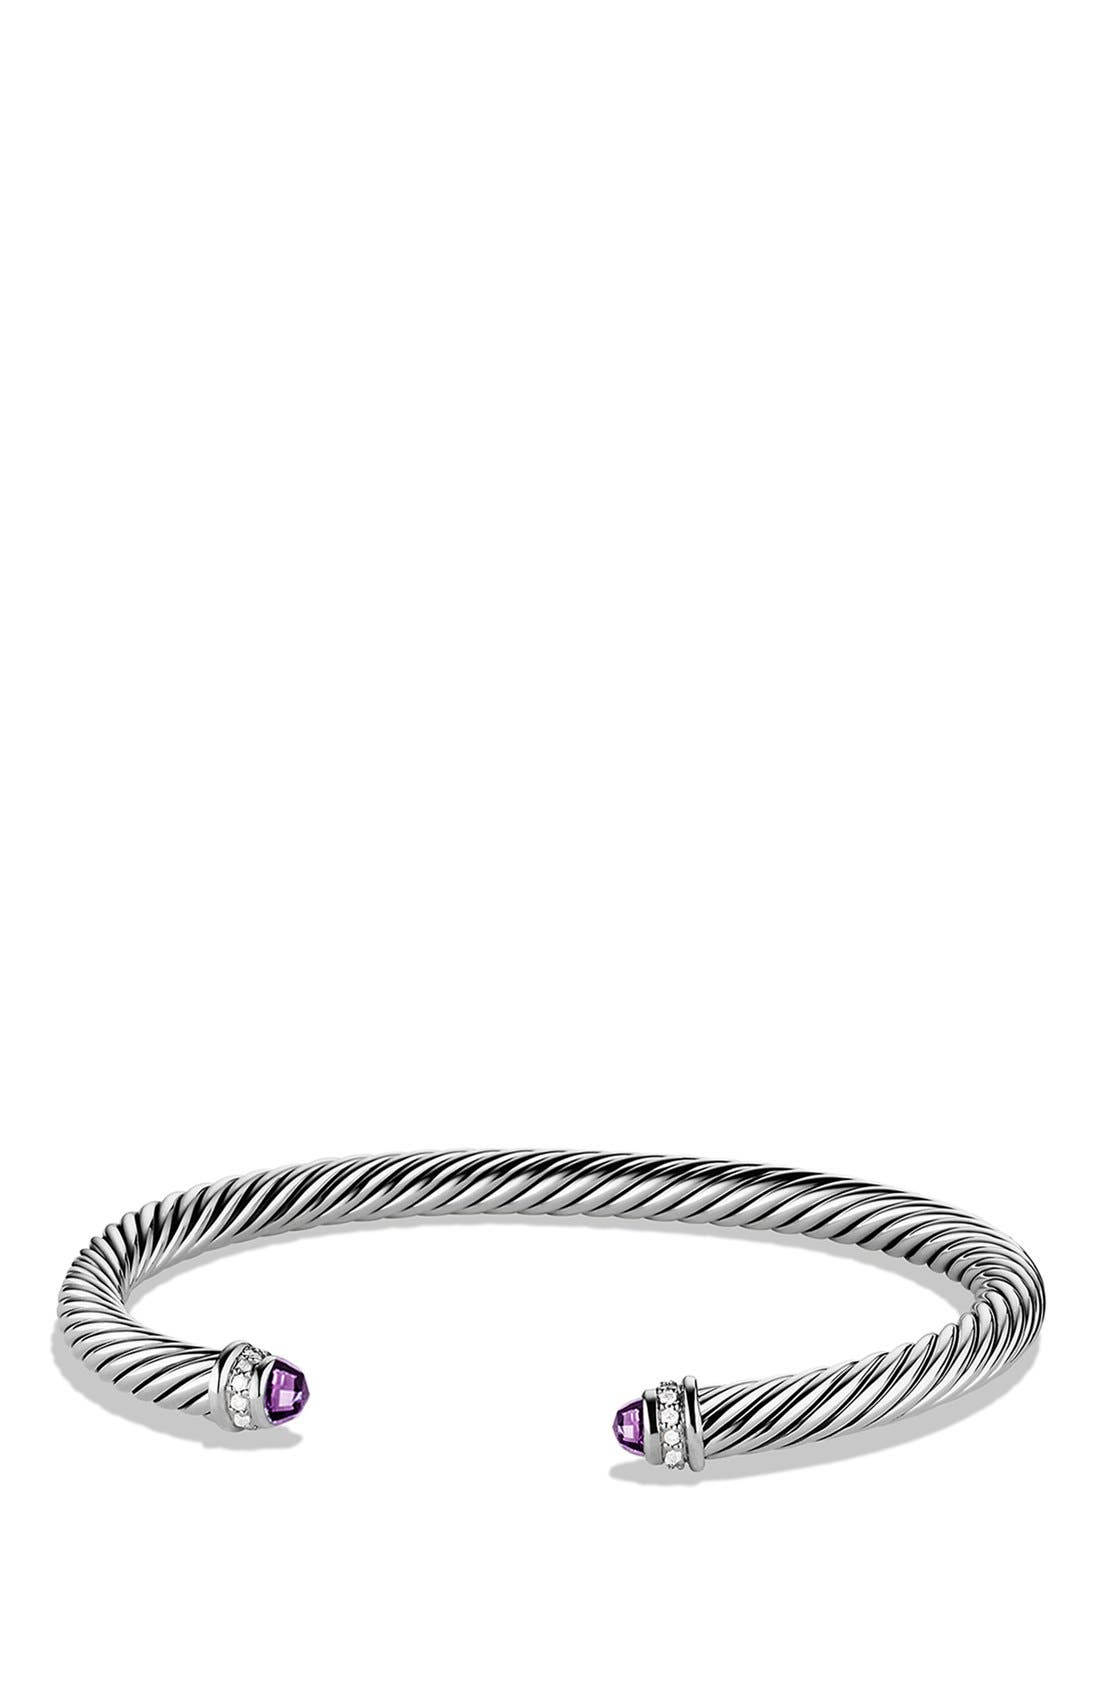 David Yurman 'Cable Classics' Bracelet with Semiprecious Stones & Diamonds